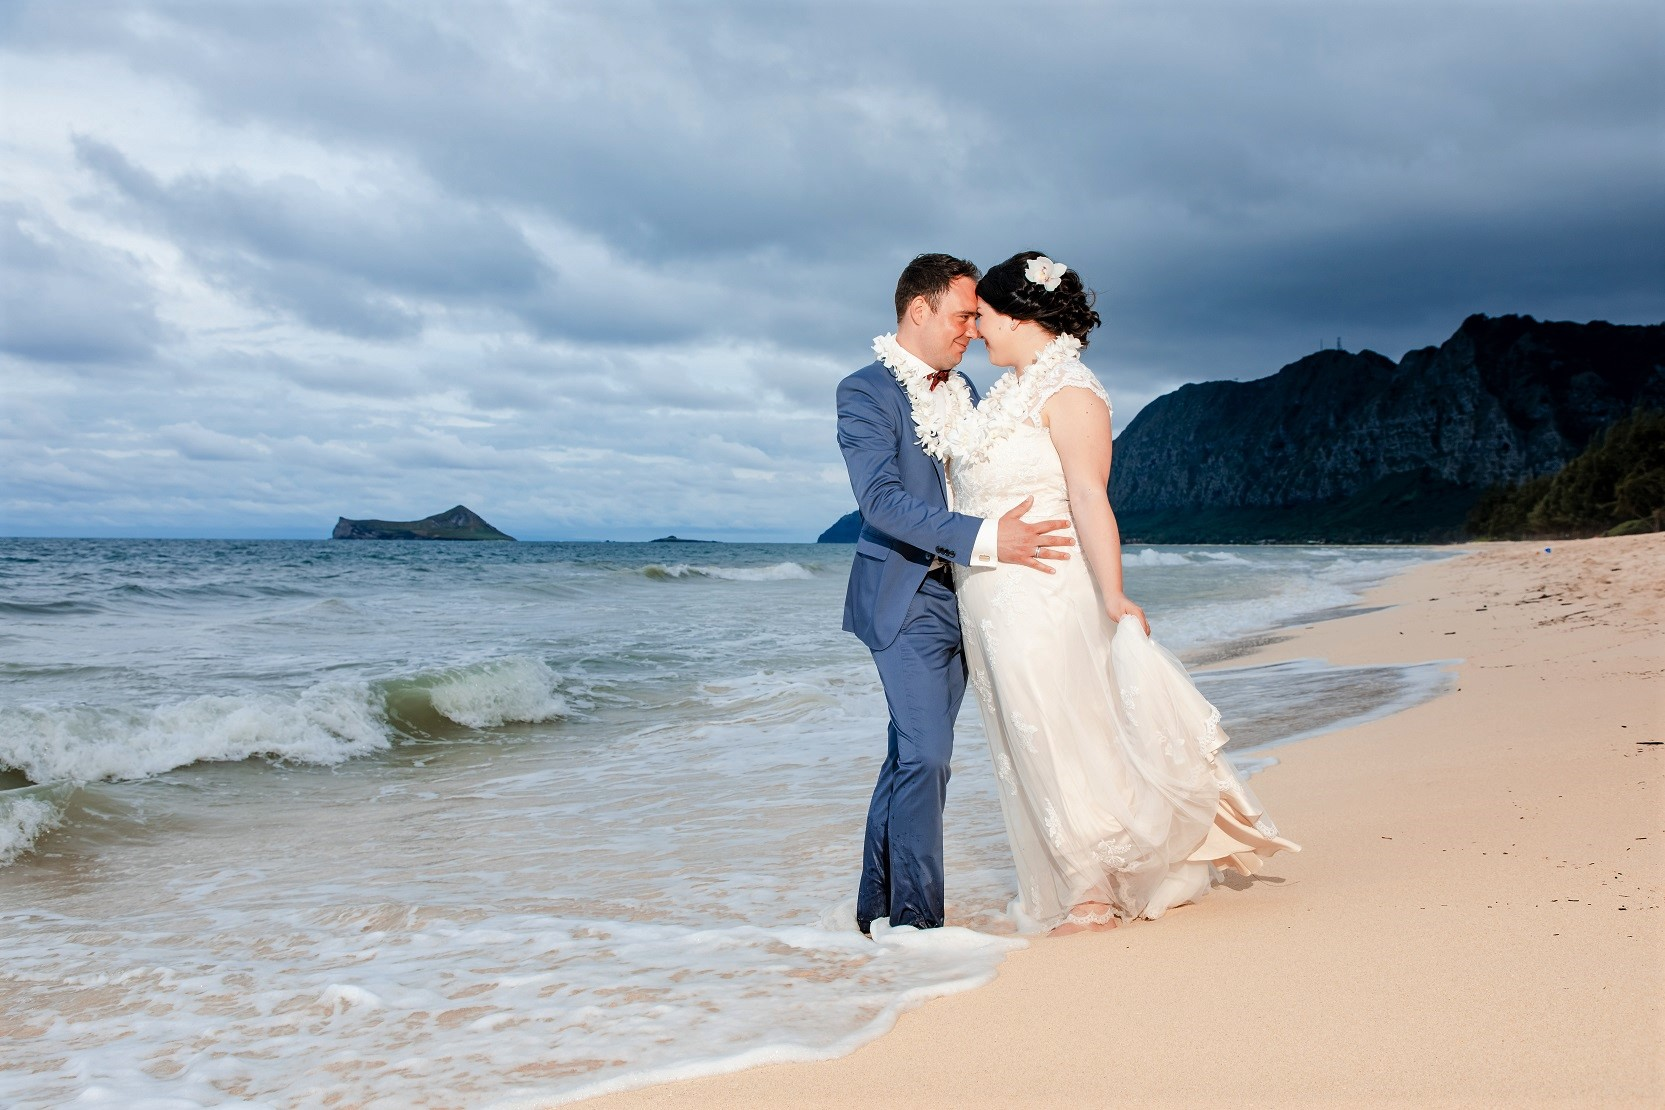 oahu elopement bride and groom sunset beach portrait